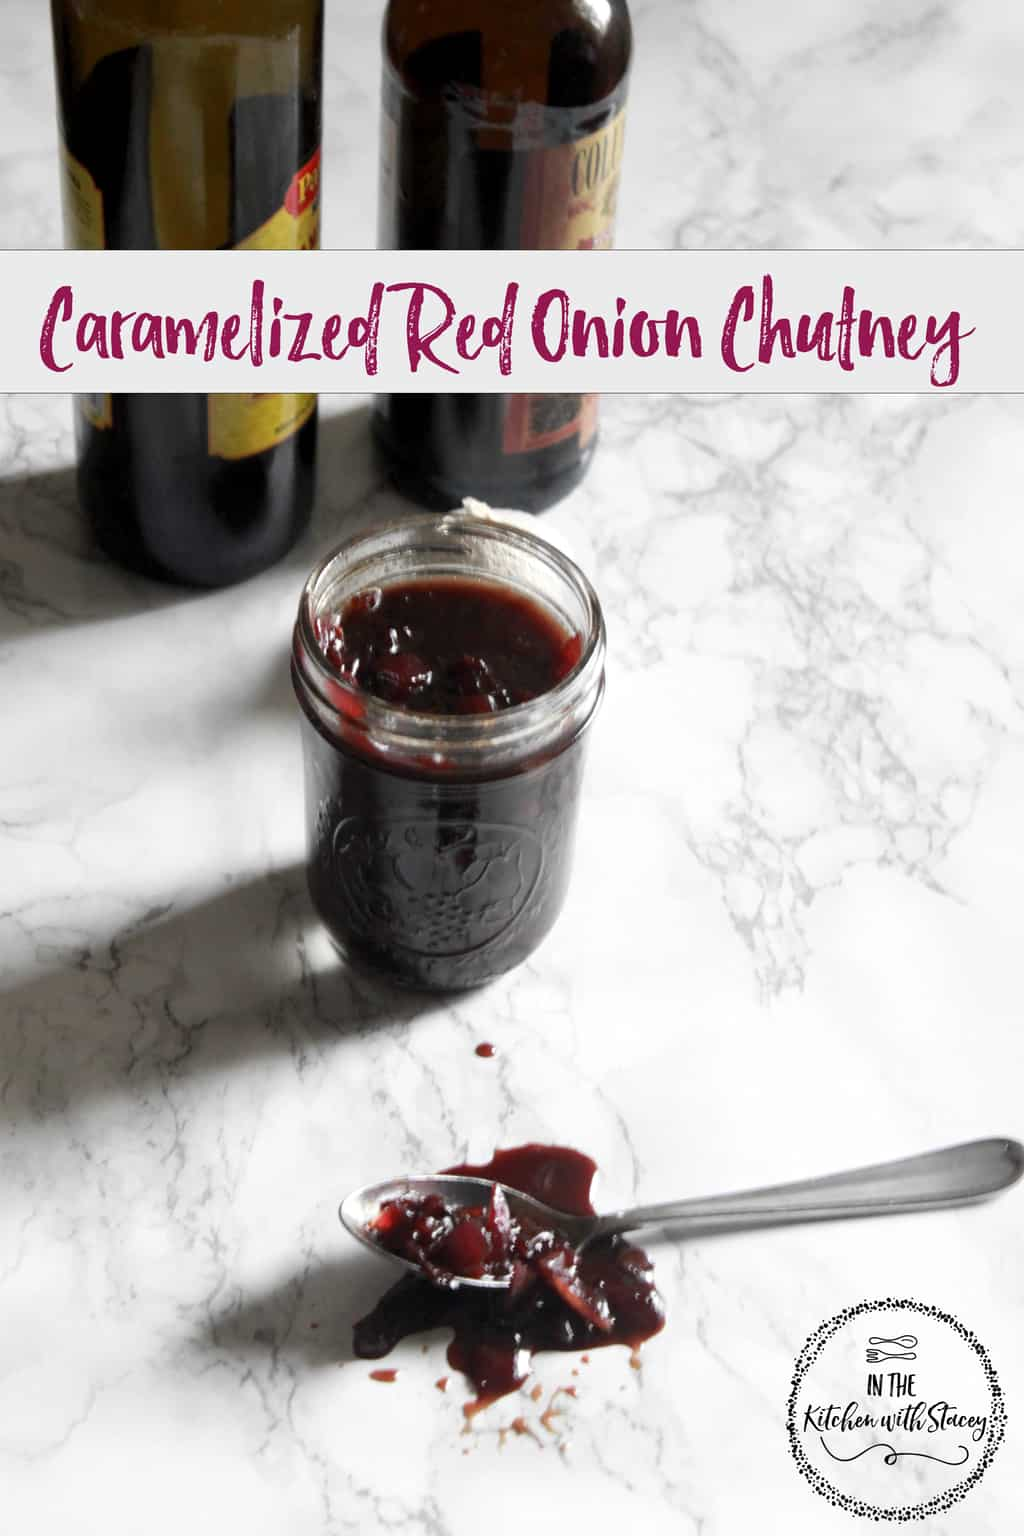 caramelized red onion chutney